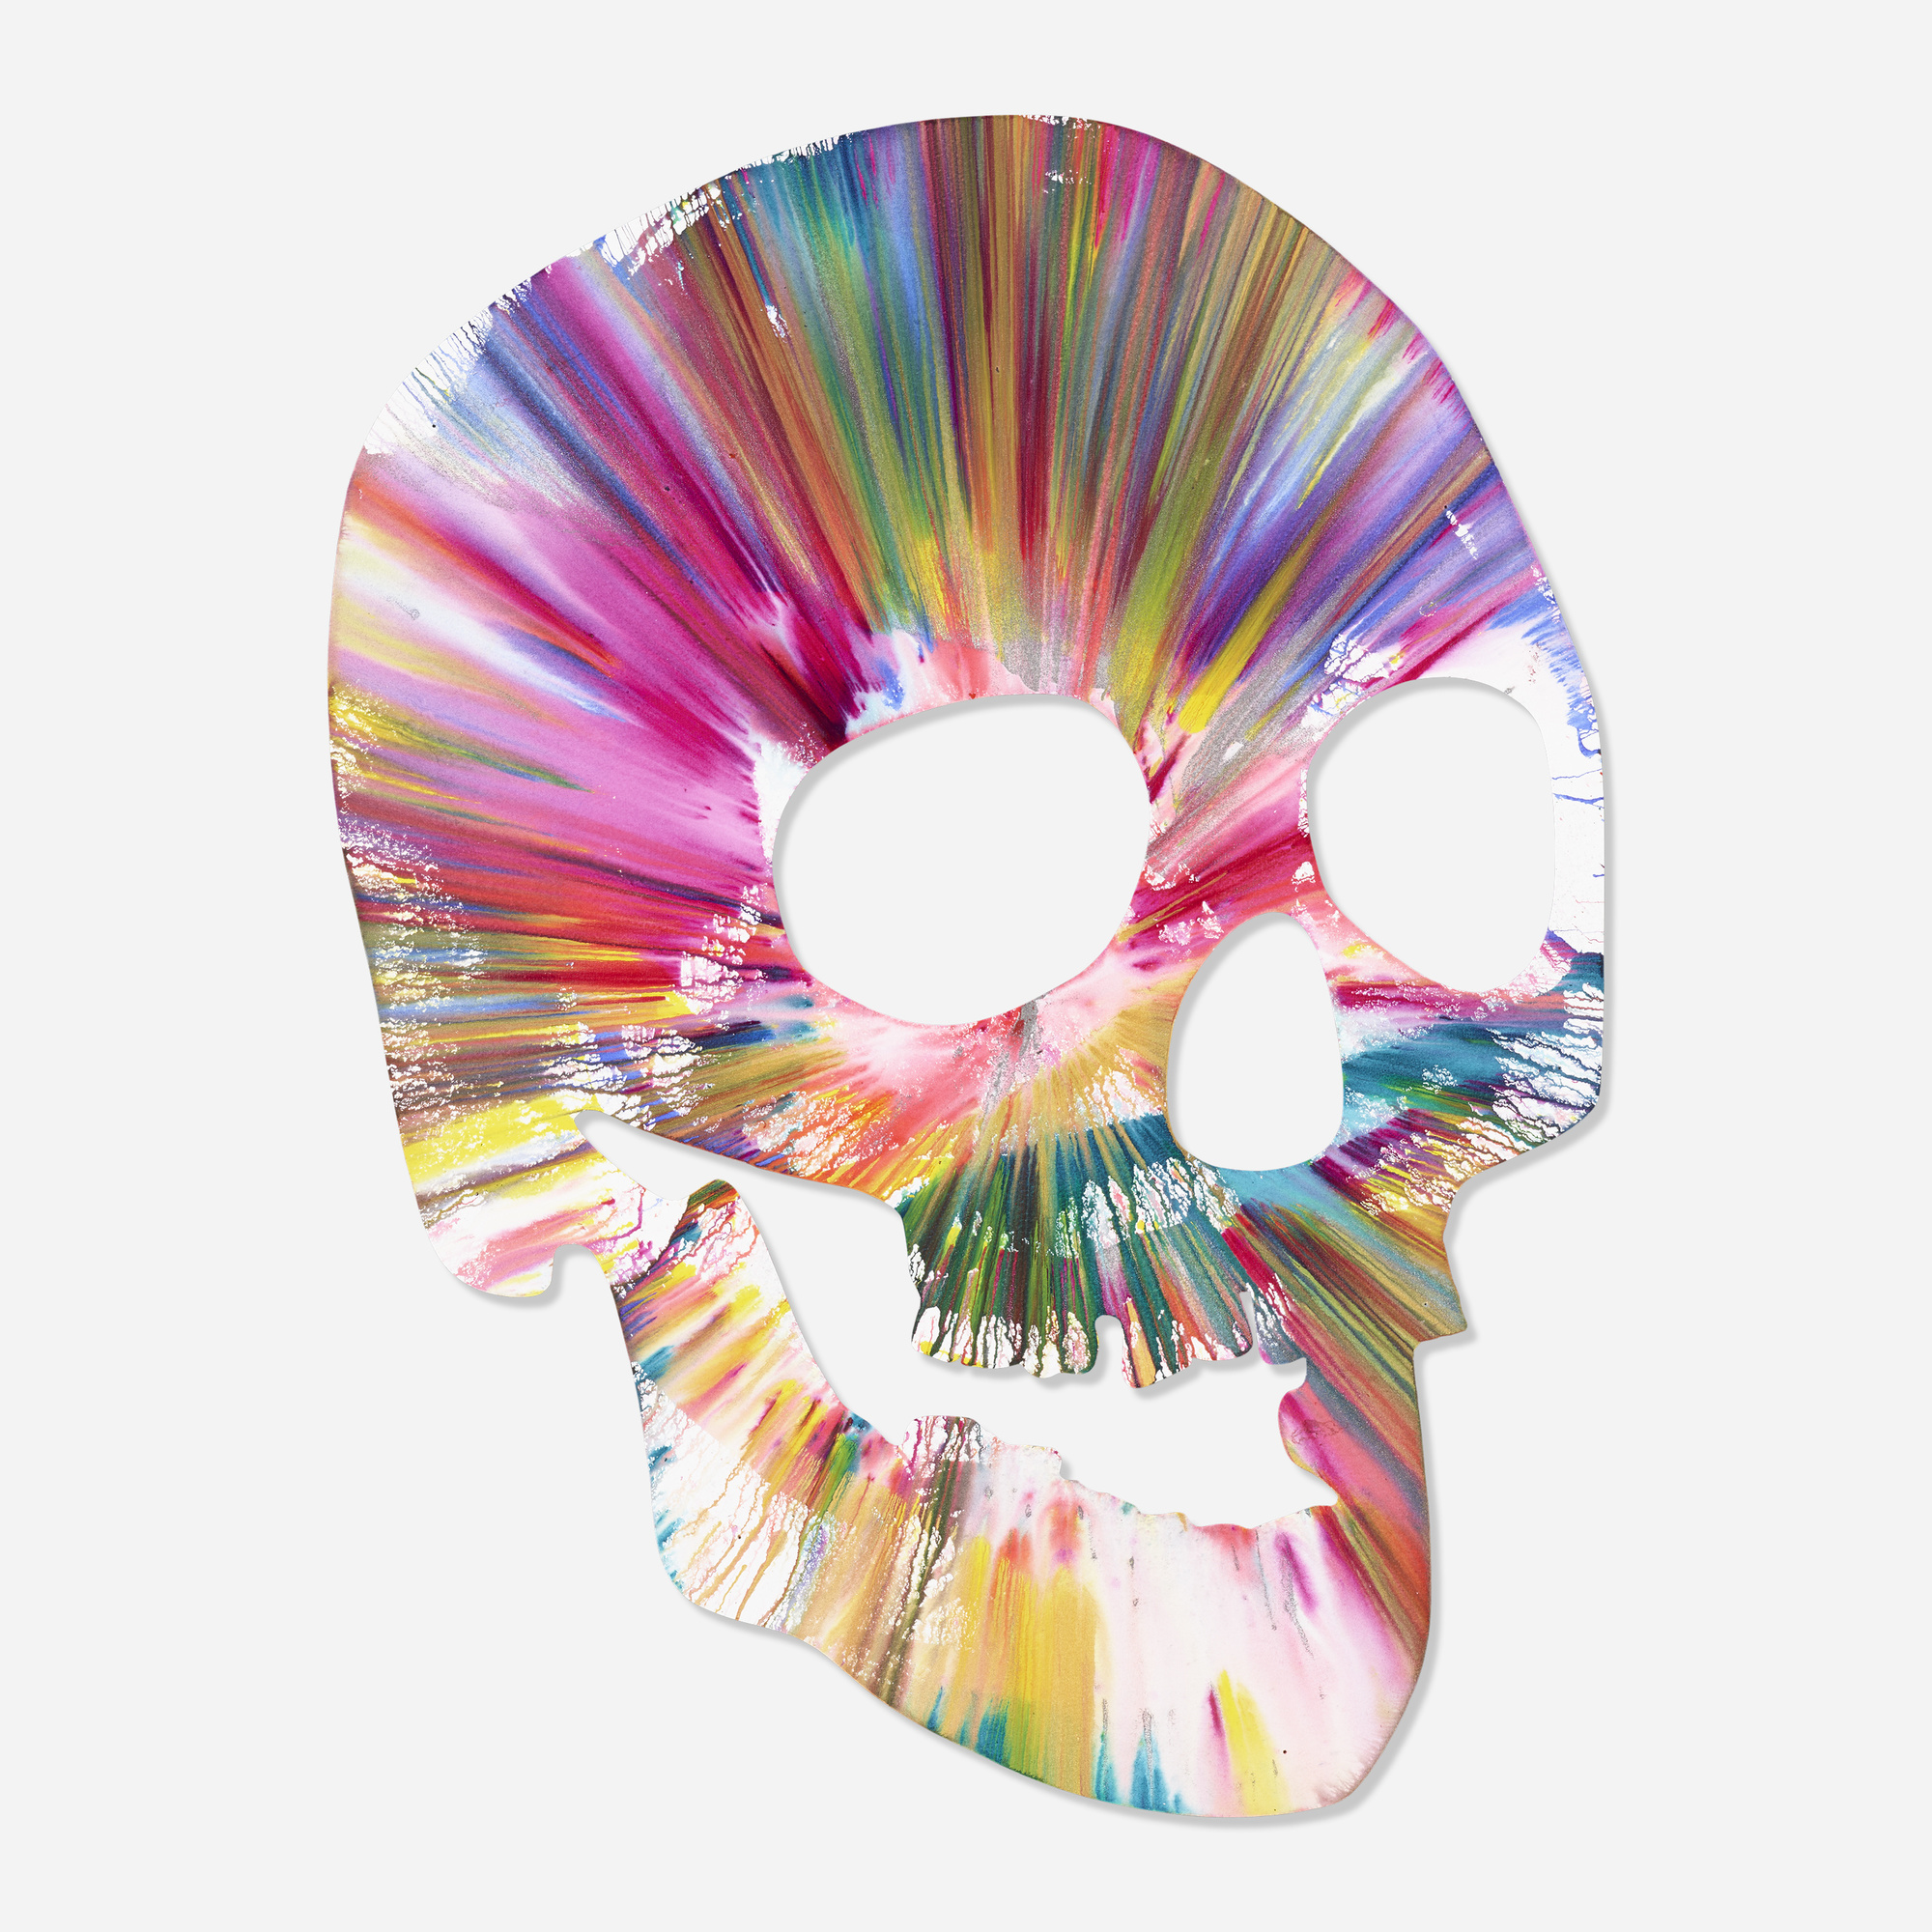 329 Damien Hirst Skull Spin Painting Prints Multiples 26 February 2020 Auctions Rago Auctions